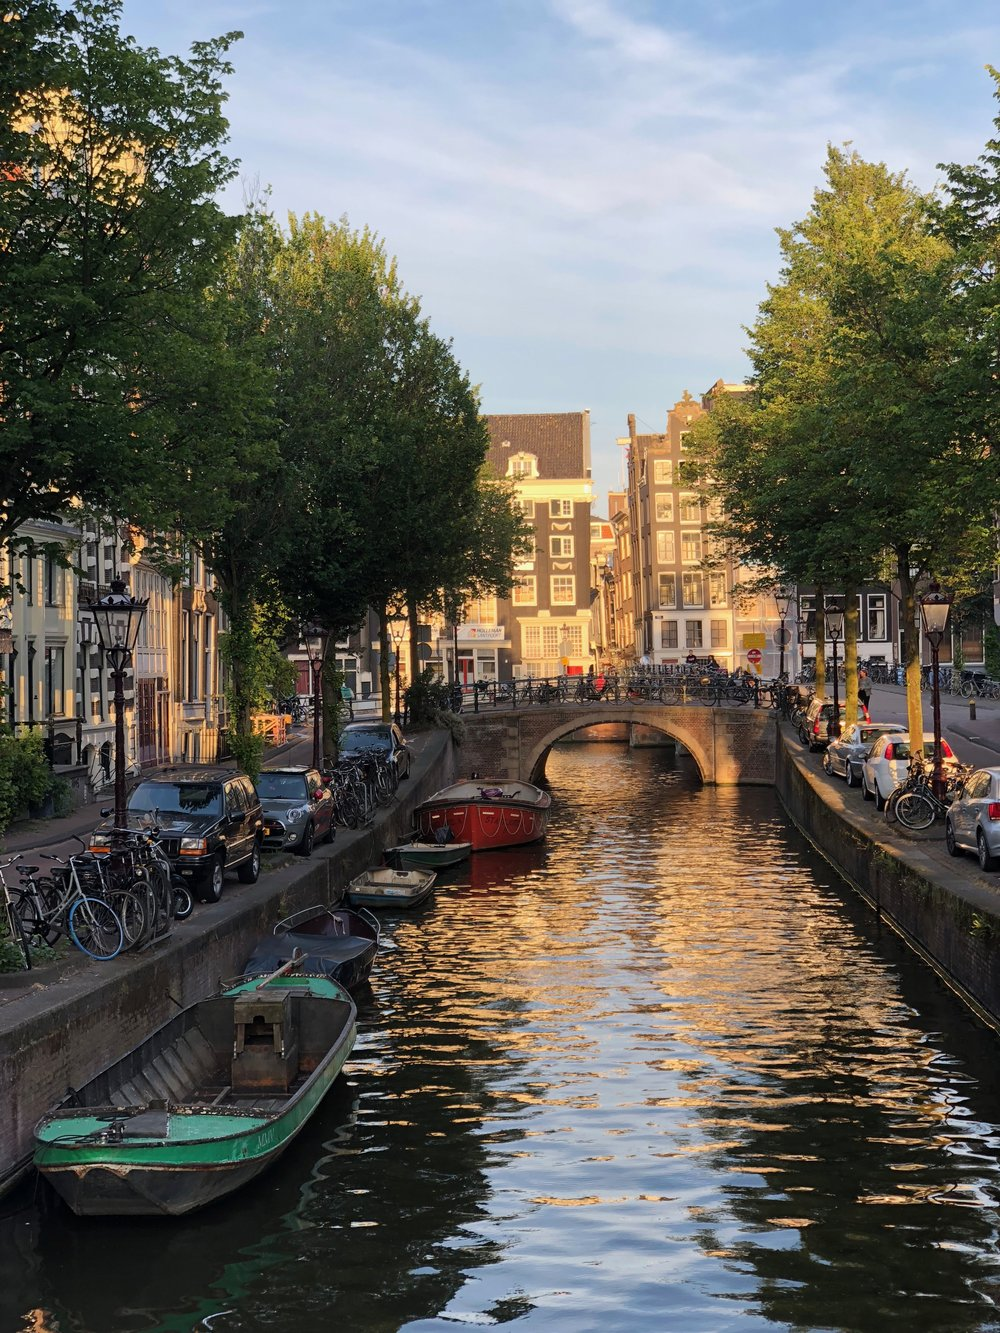 The golden hour in Amsterdam